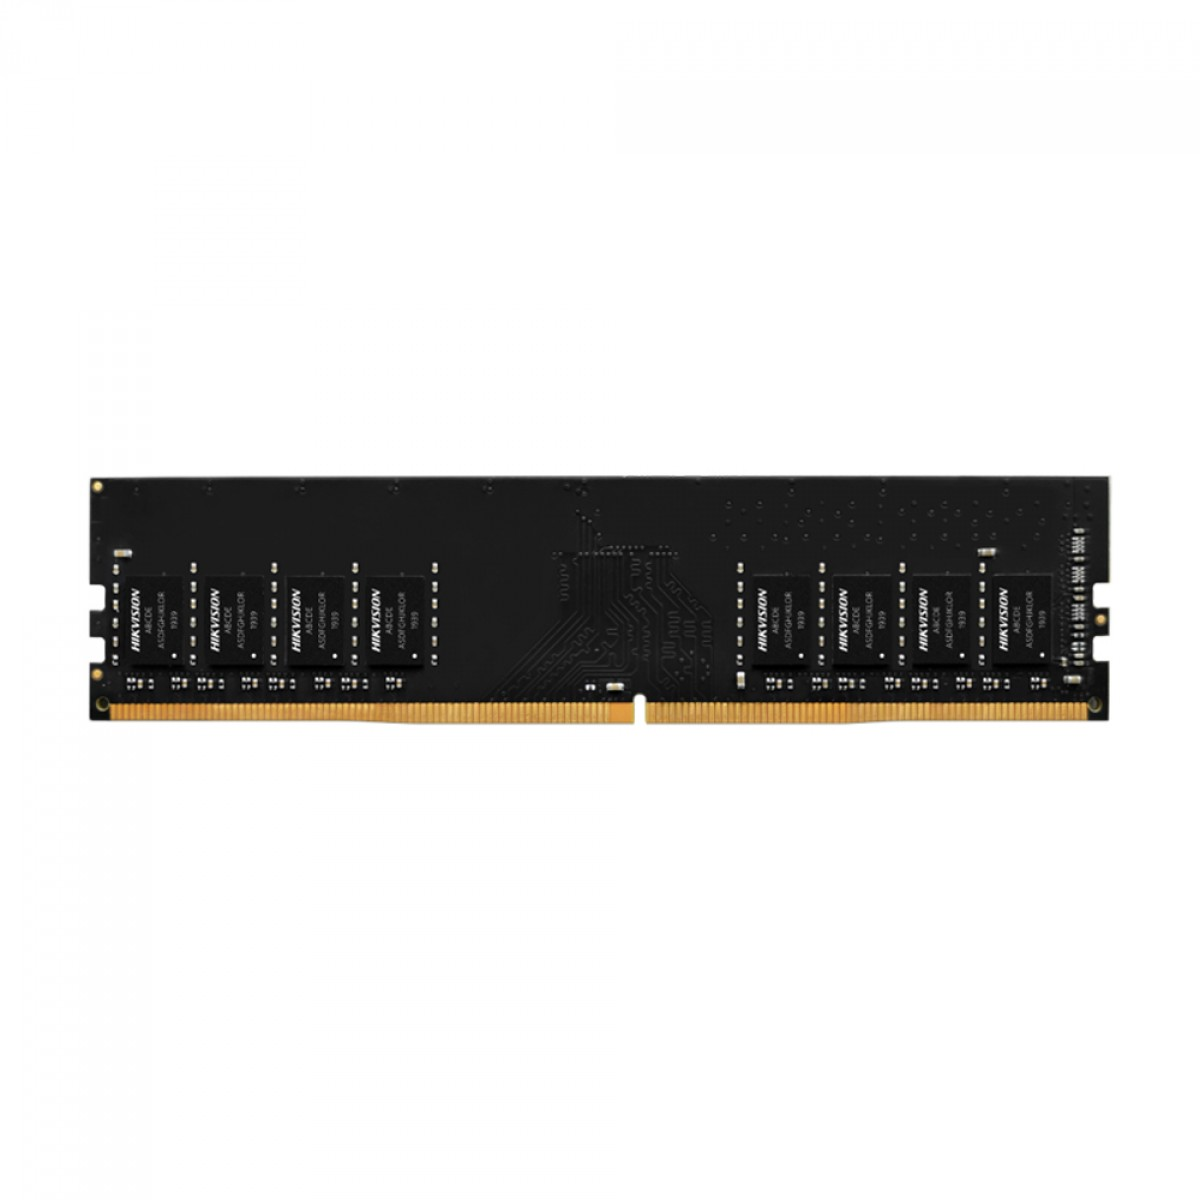 Memória Hikvision DDR3 4GB 1600MHz - HKED3041AAA2A0ZA1